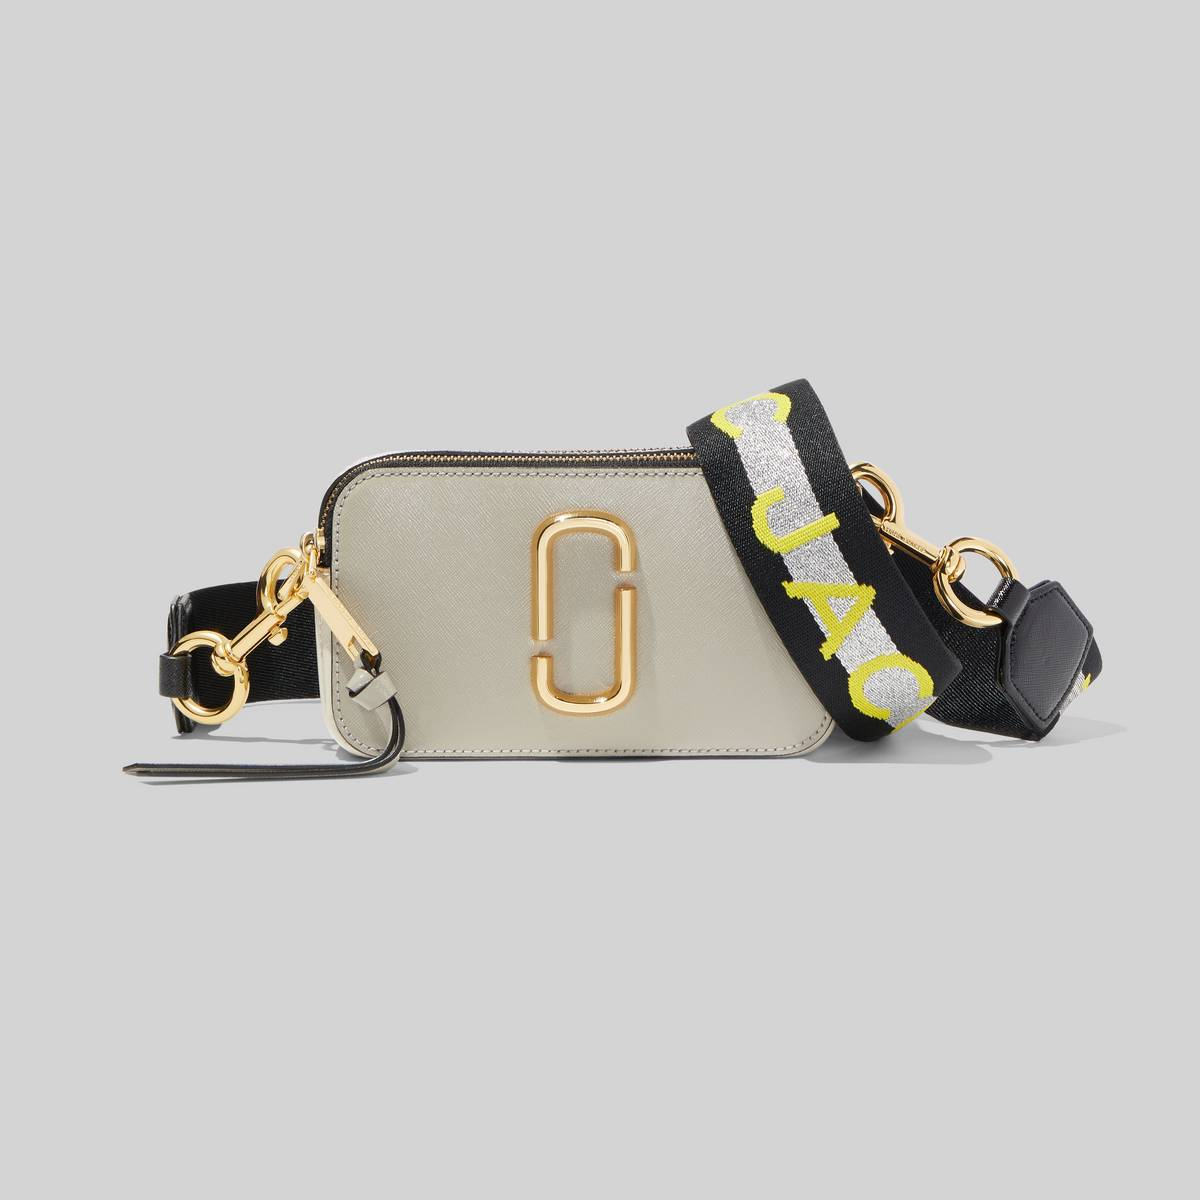 Small camera-style bag in Saffiano leather with an adjustable, logo crossbody strap. | MARC JACOBS Women\\'s The Logo Strap Snapshot Bag in Dust Multi